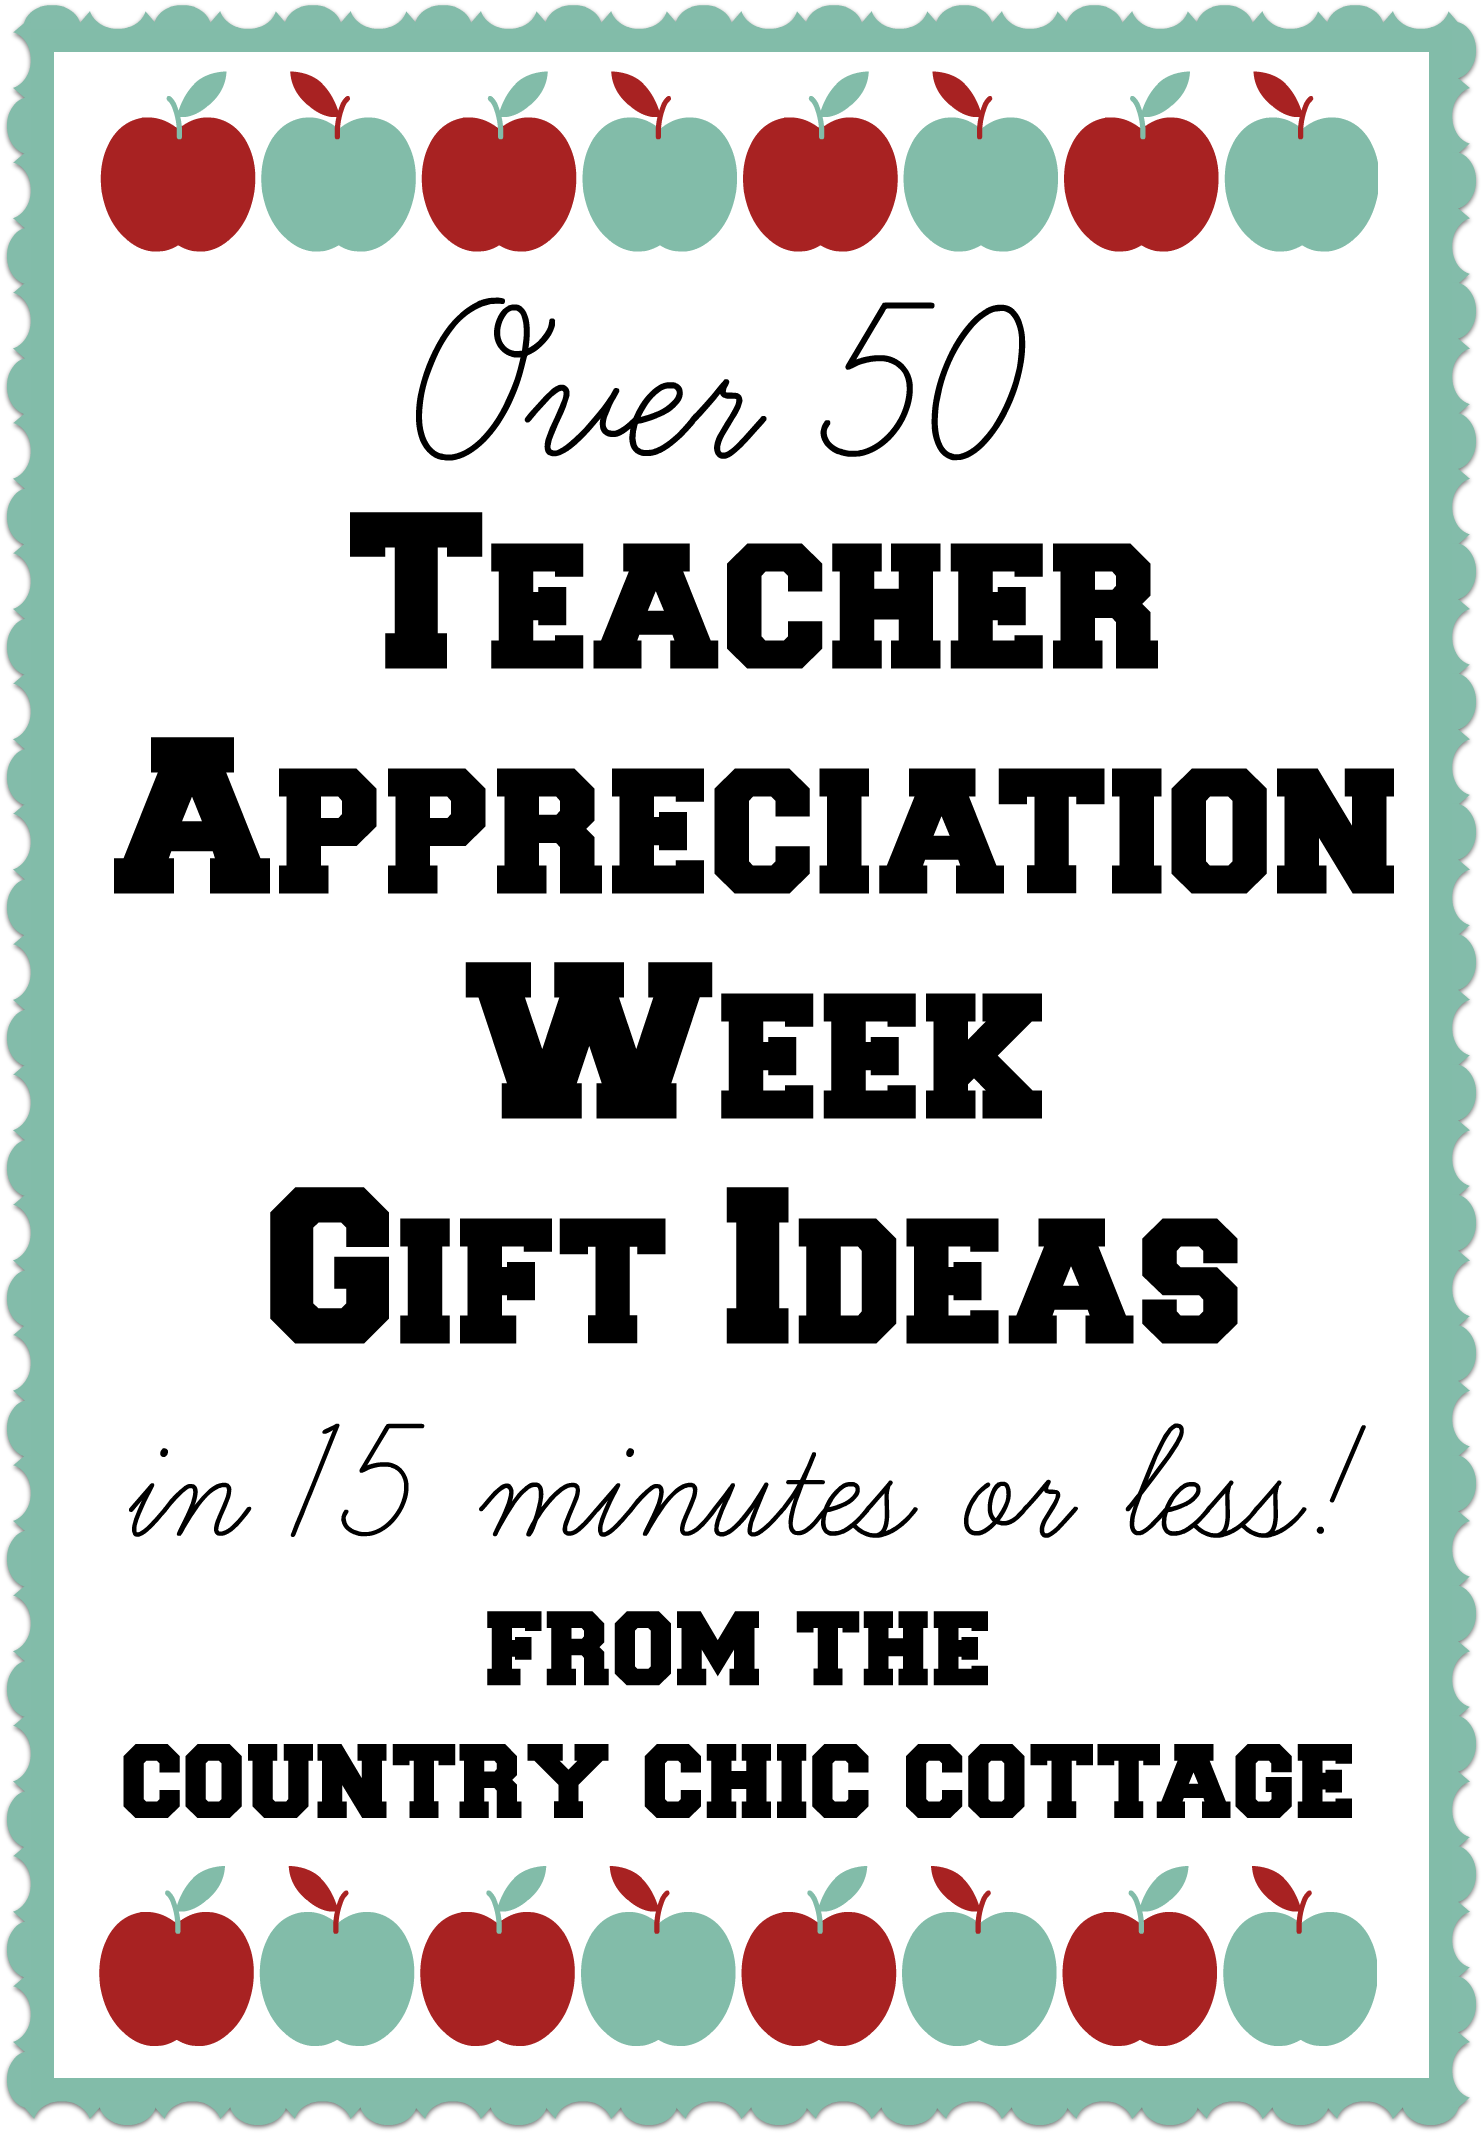 Classroom Ideas For Teacher Appreciation Week ~ Over teacher gift ideas the country chic cottage